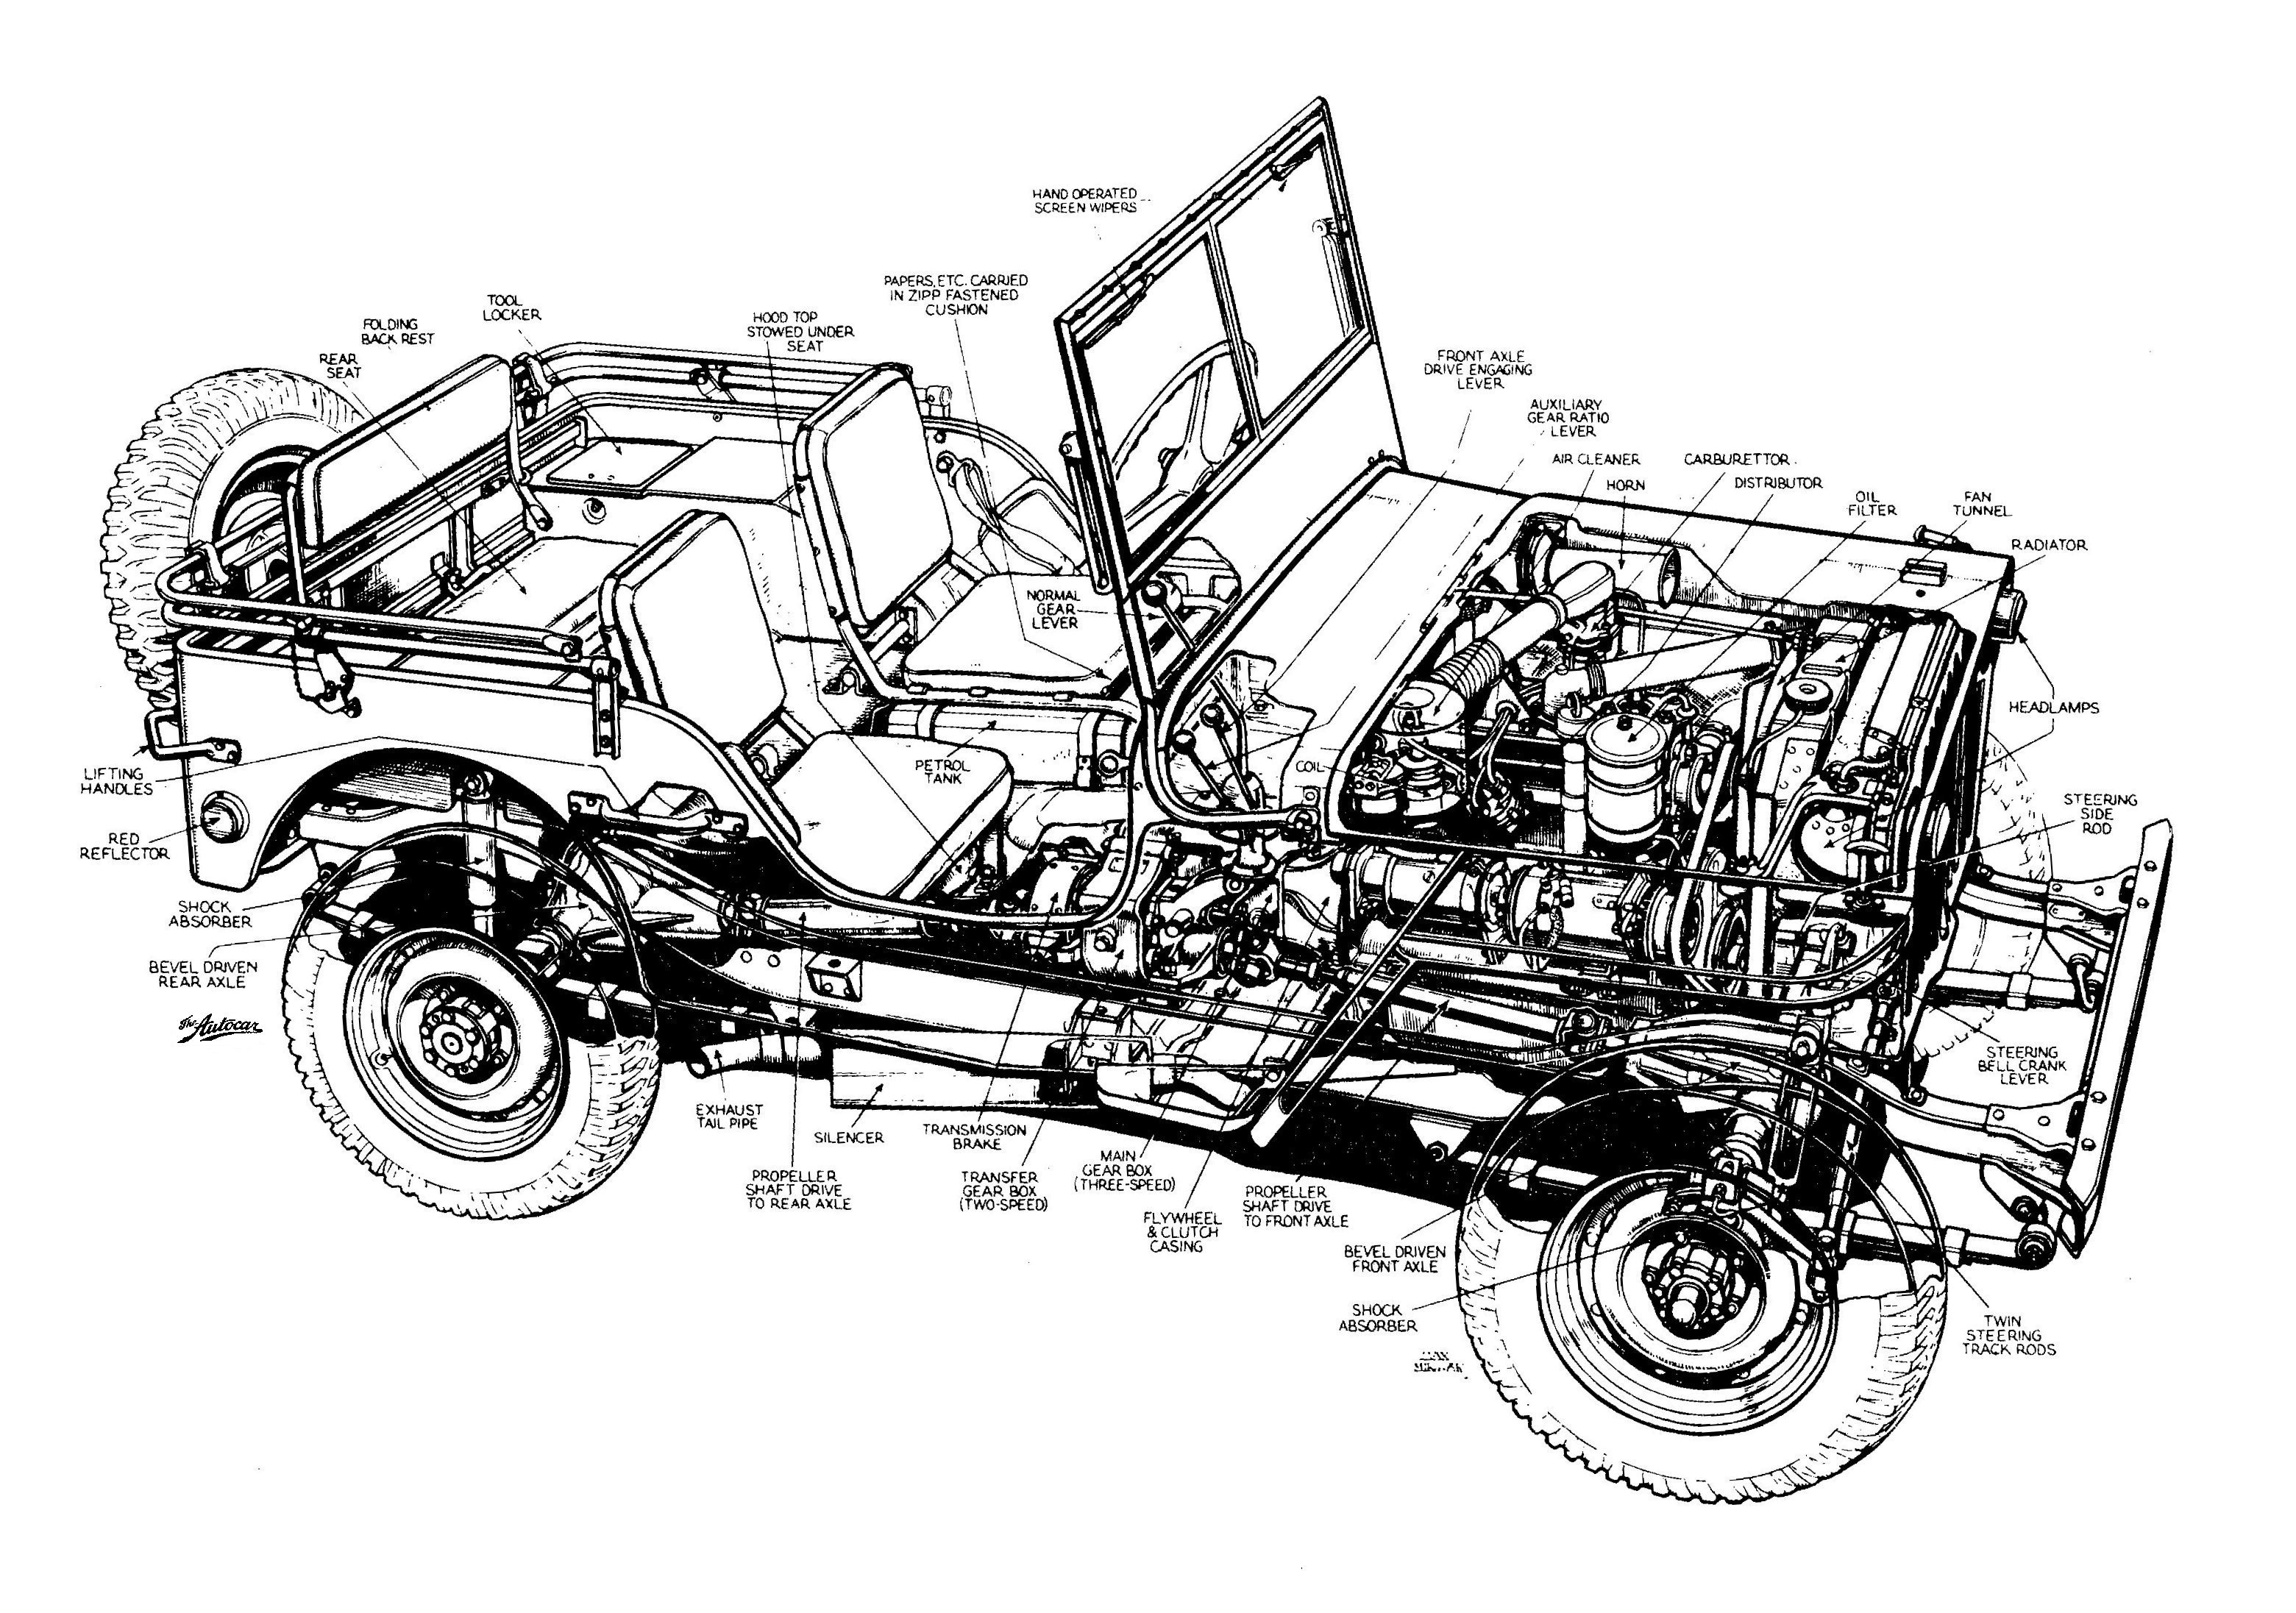 161059254932 further Willys Mb together with 1997 Jaguar Xk8 Wiring Diagram moreover Volvo 740 Wiring Diagrams Free additionally How Do I Remove My Ecu Send Get Tuned 95686. on xjs engine wiring